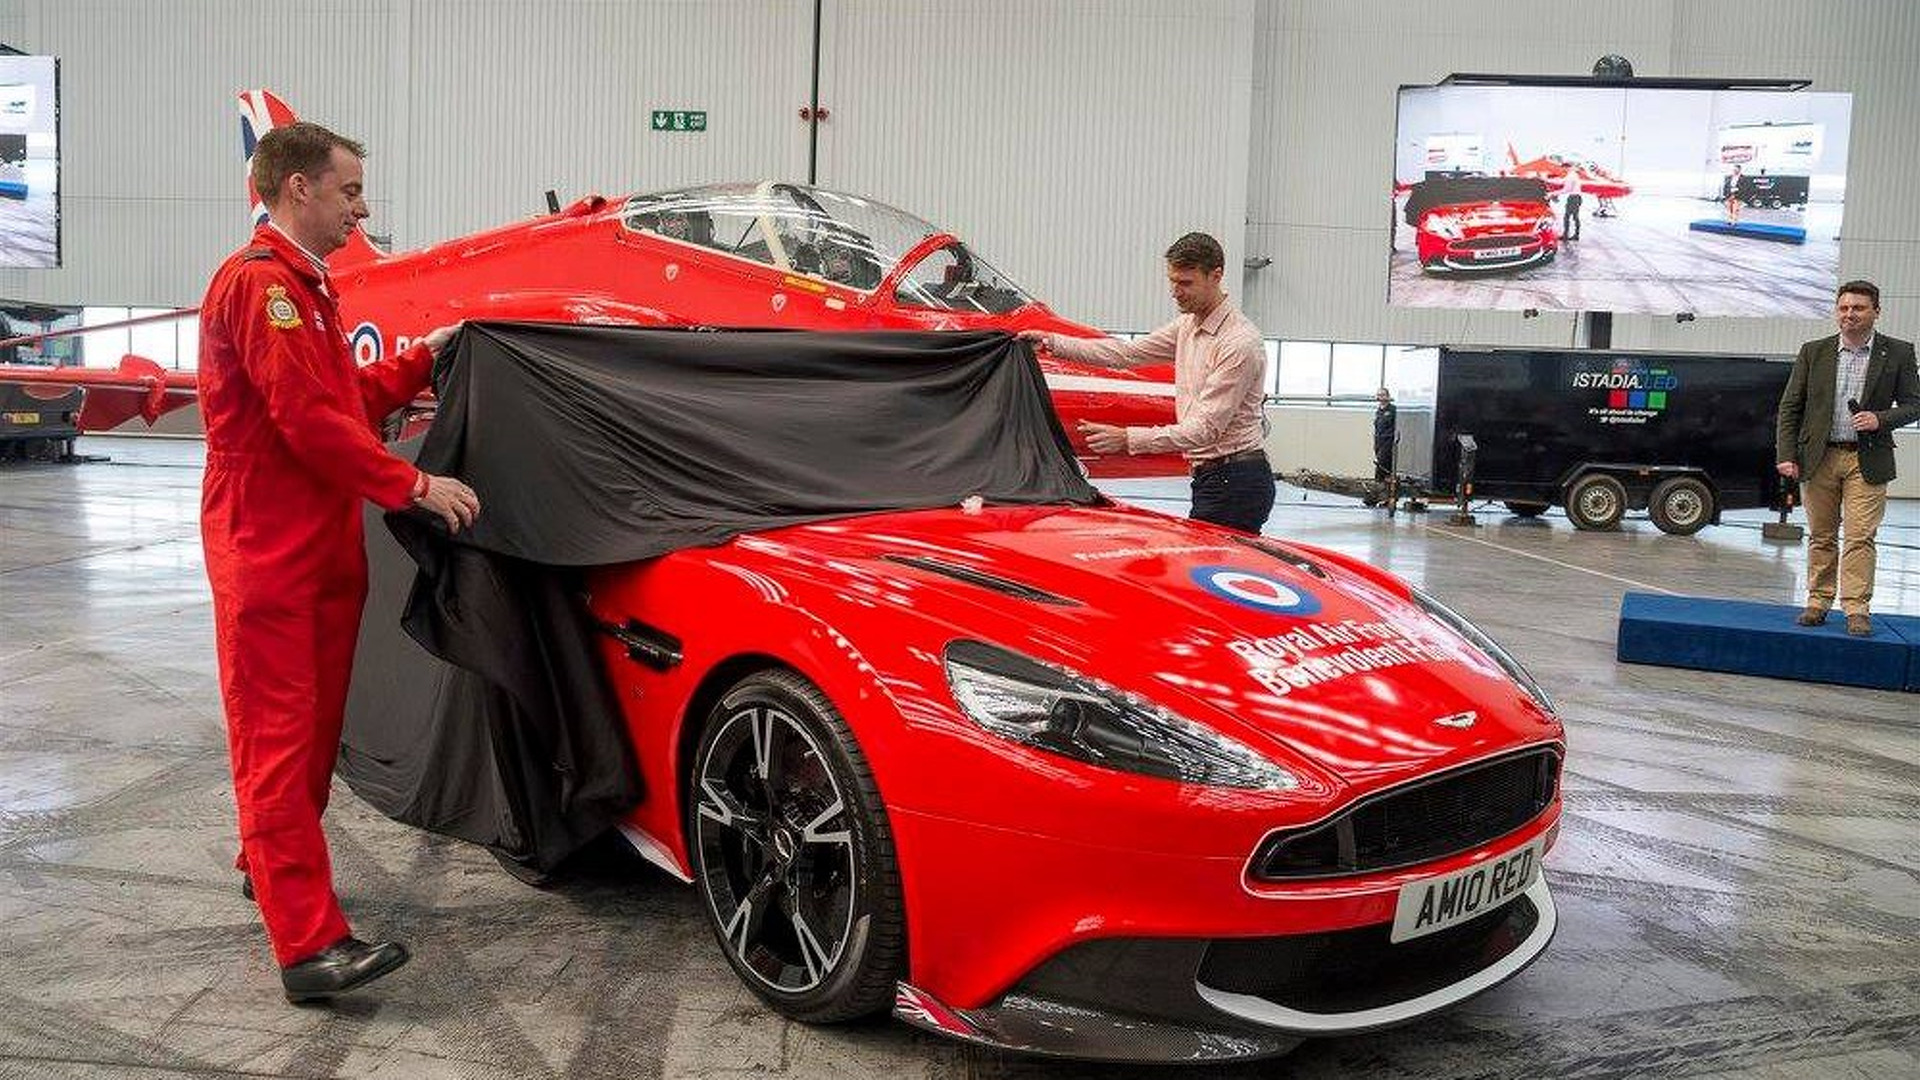 Aston Martin Vanquish S Red Arrows Edition (6)